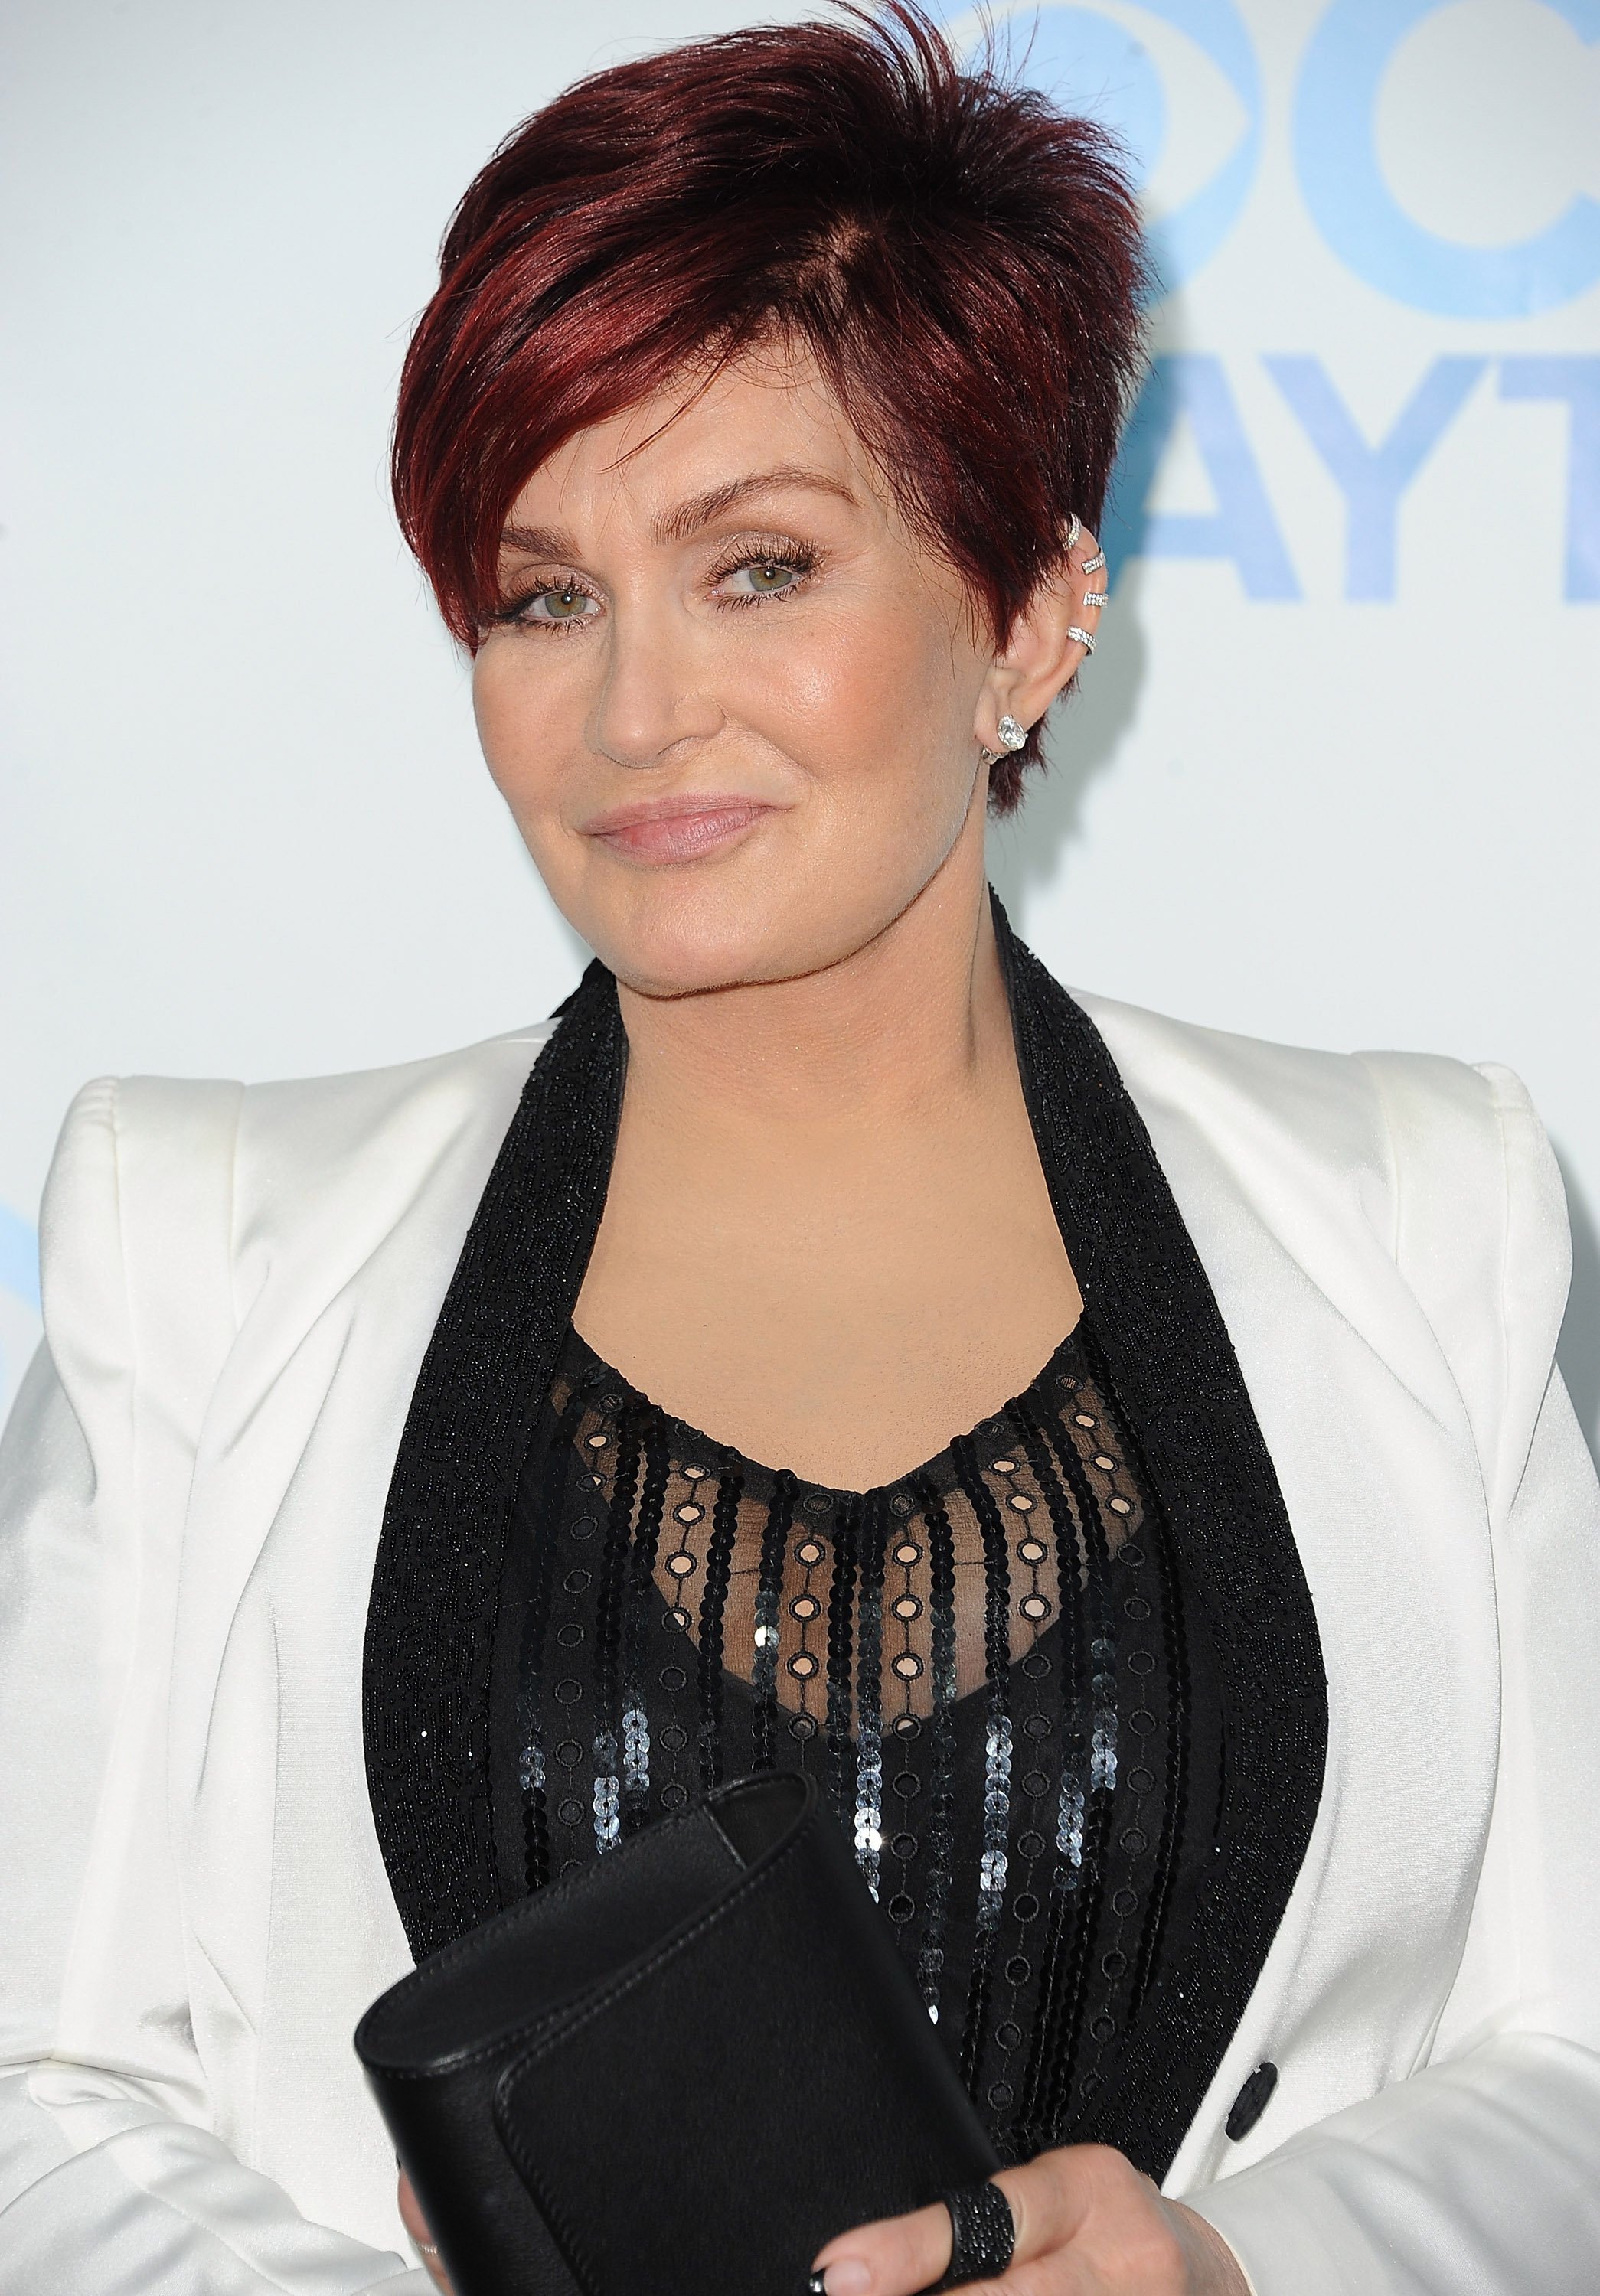 Sharon Osbourne pictured at the 41st Annual Daytime Emmy Awards CBS after party, 2014, California. | Photo: Getty Images